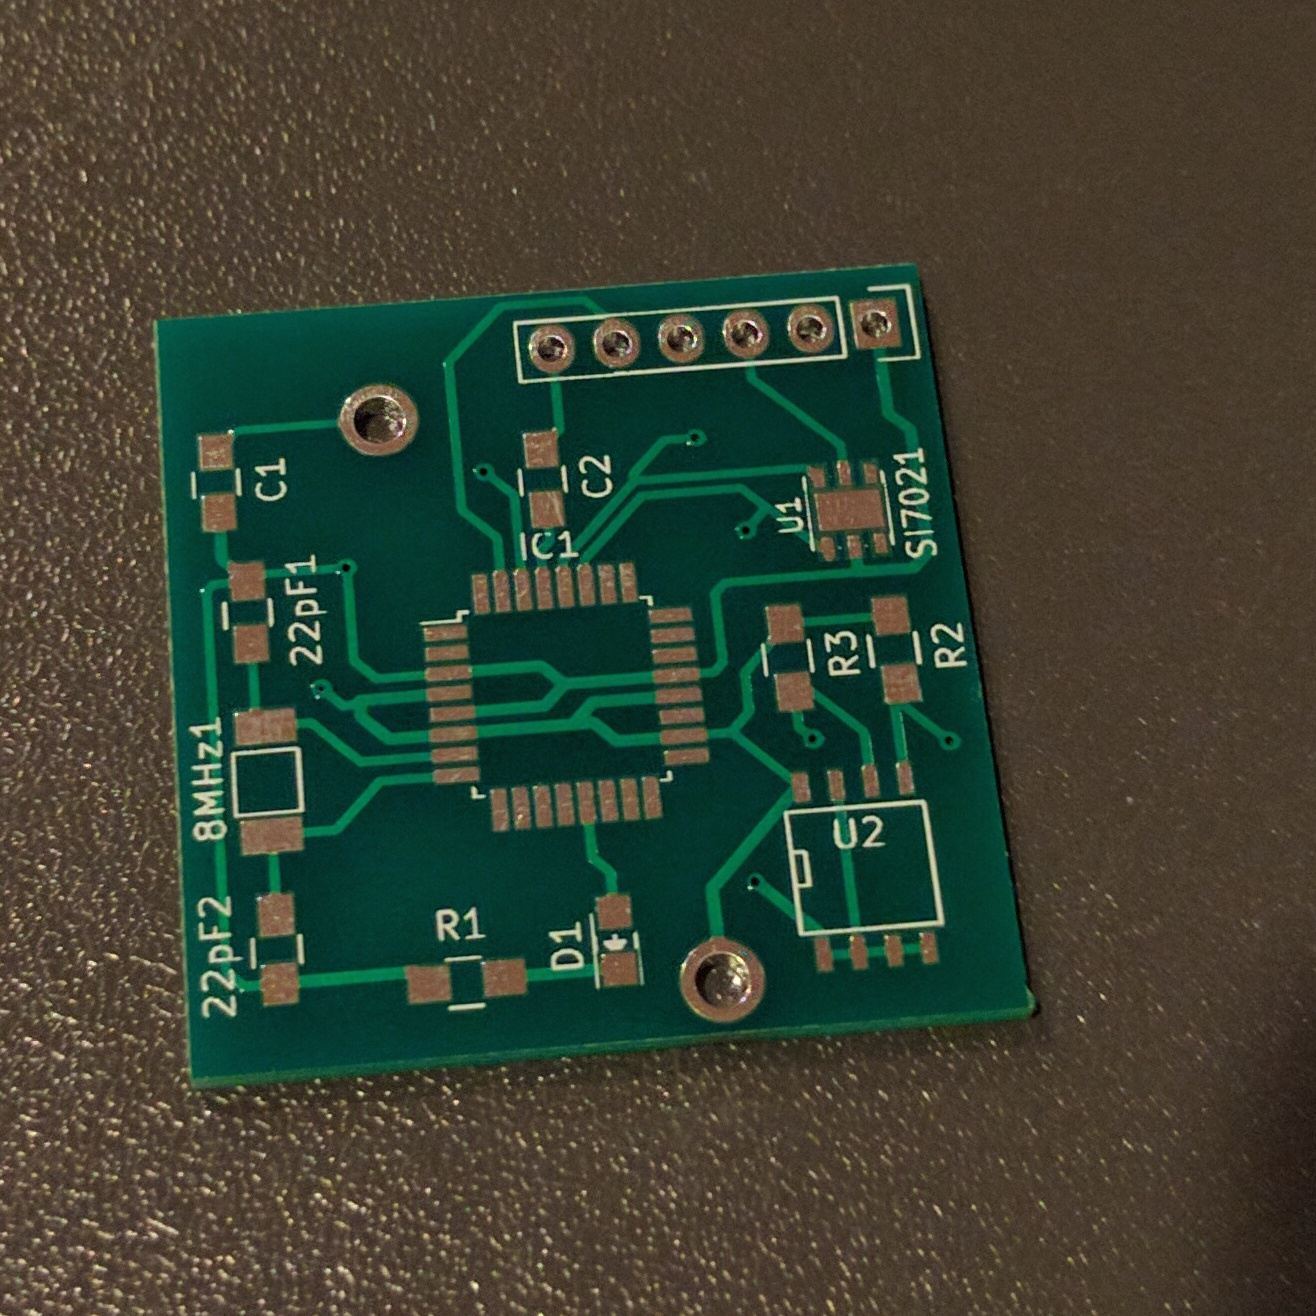 The Manufacturer's PCB